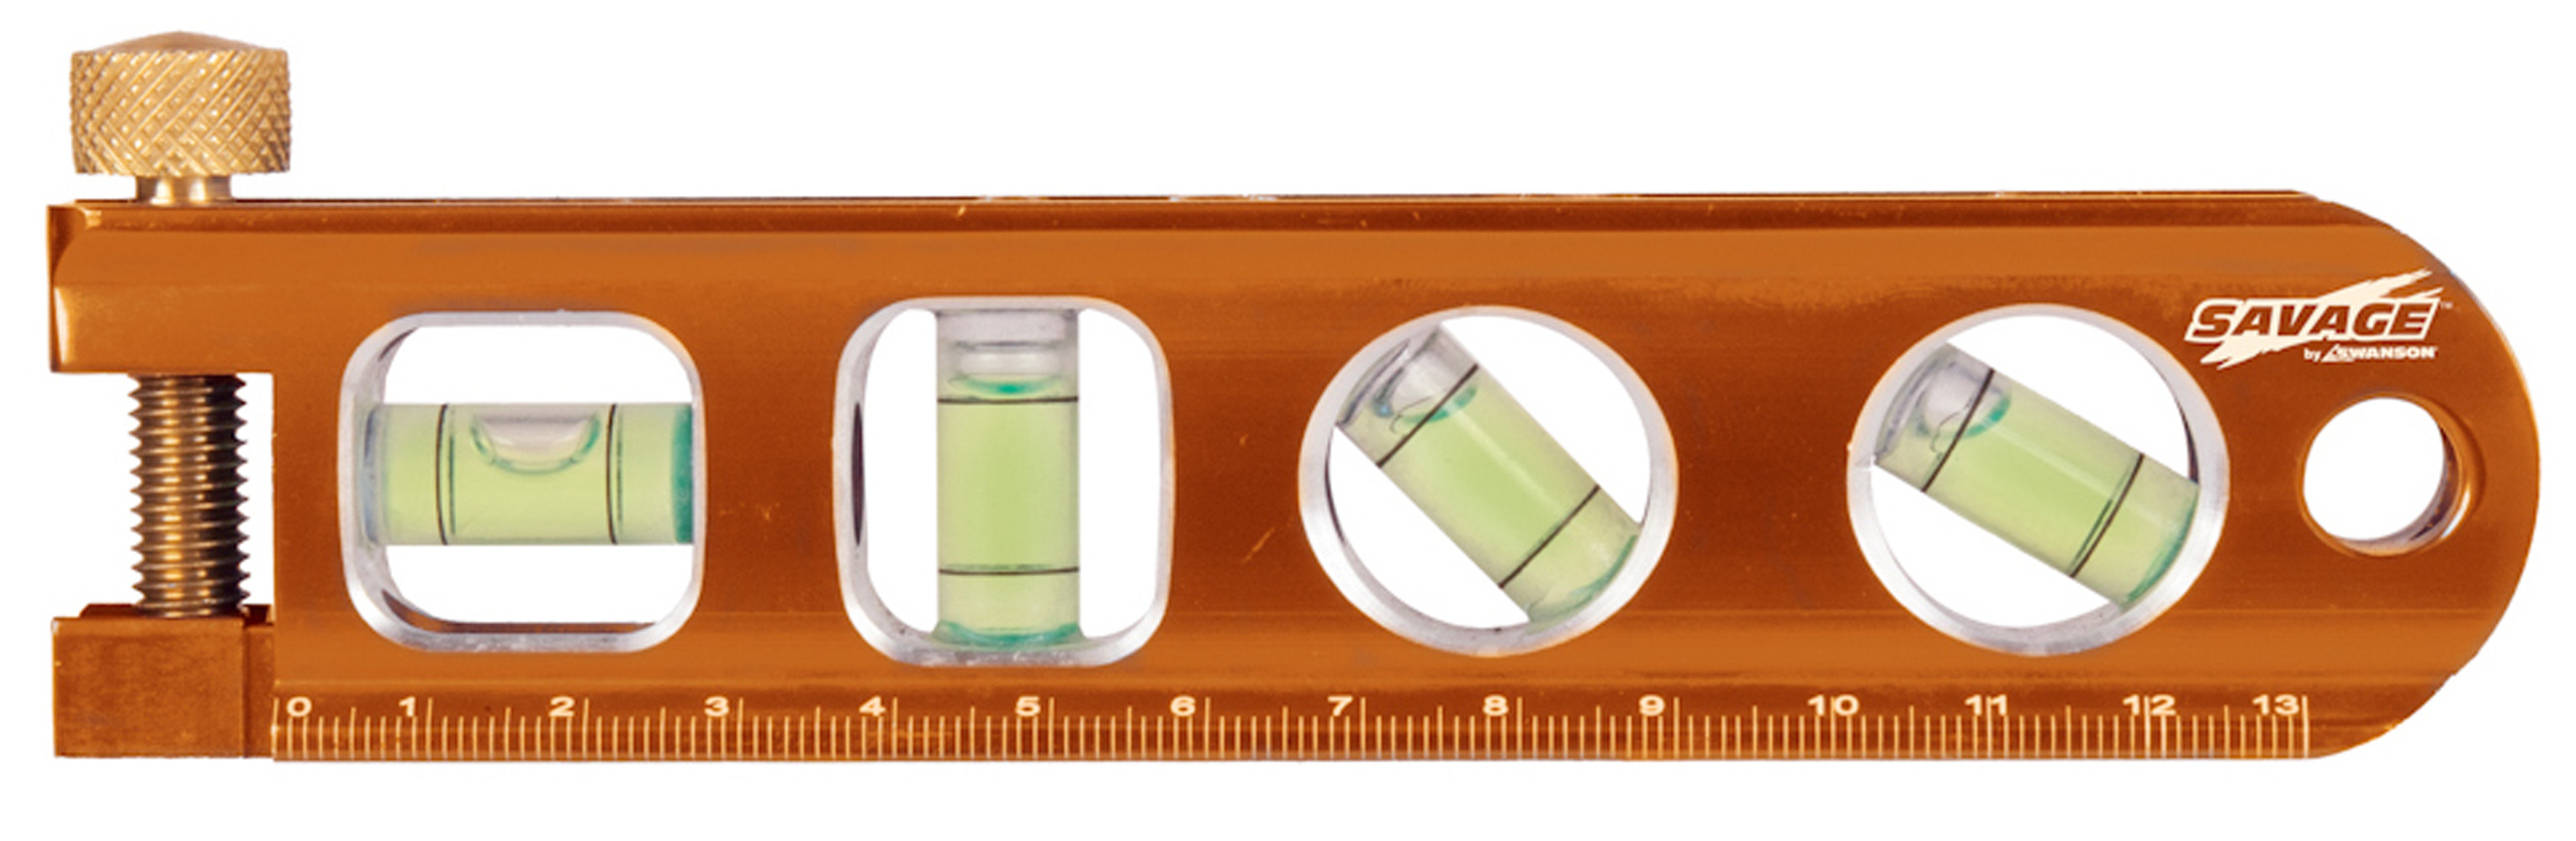 6 In. Savage Magnetic Billet Torpedo Level W Pipe Clamp, Metric (15 Cm) by Swanson Tool Company, Inc